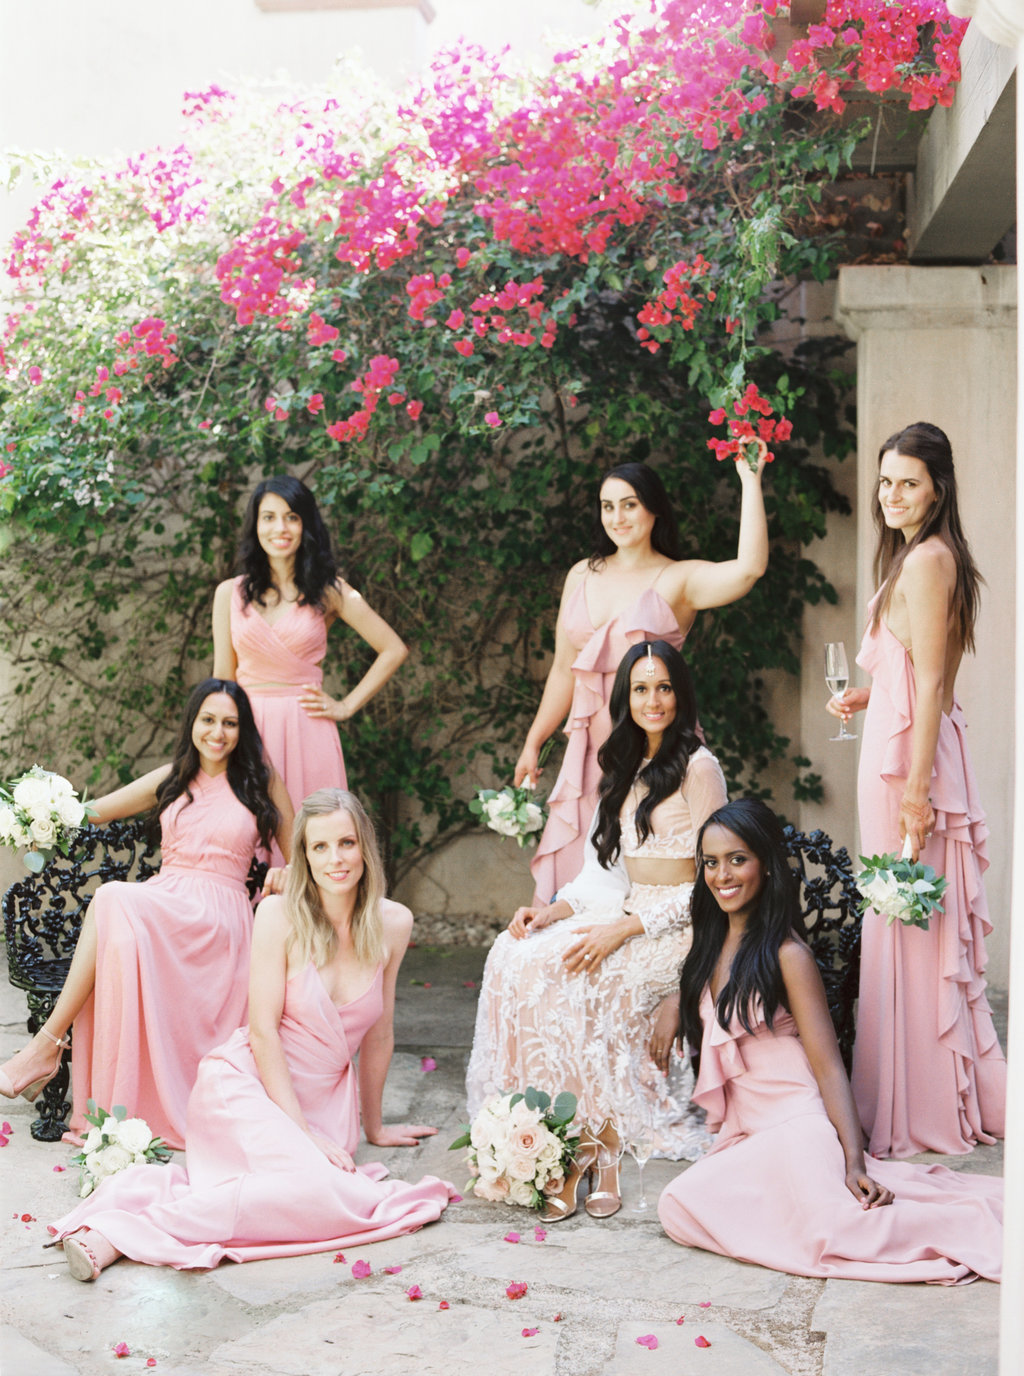 Bride and bridesmaids in vogue inspired wedding party photo